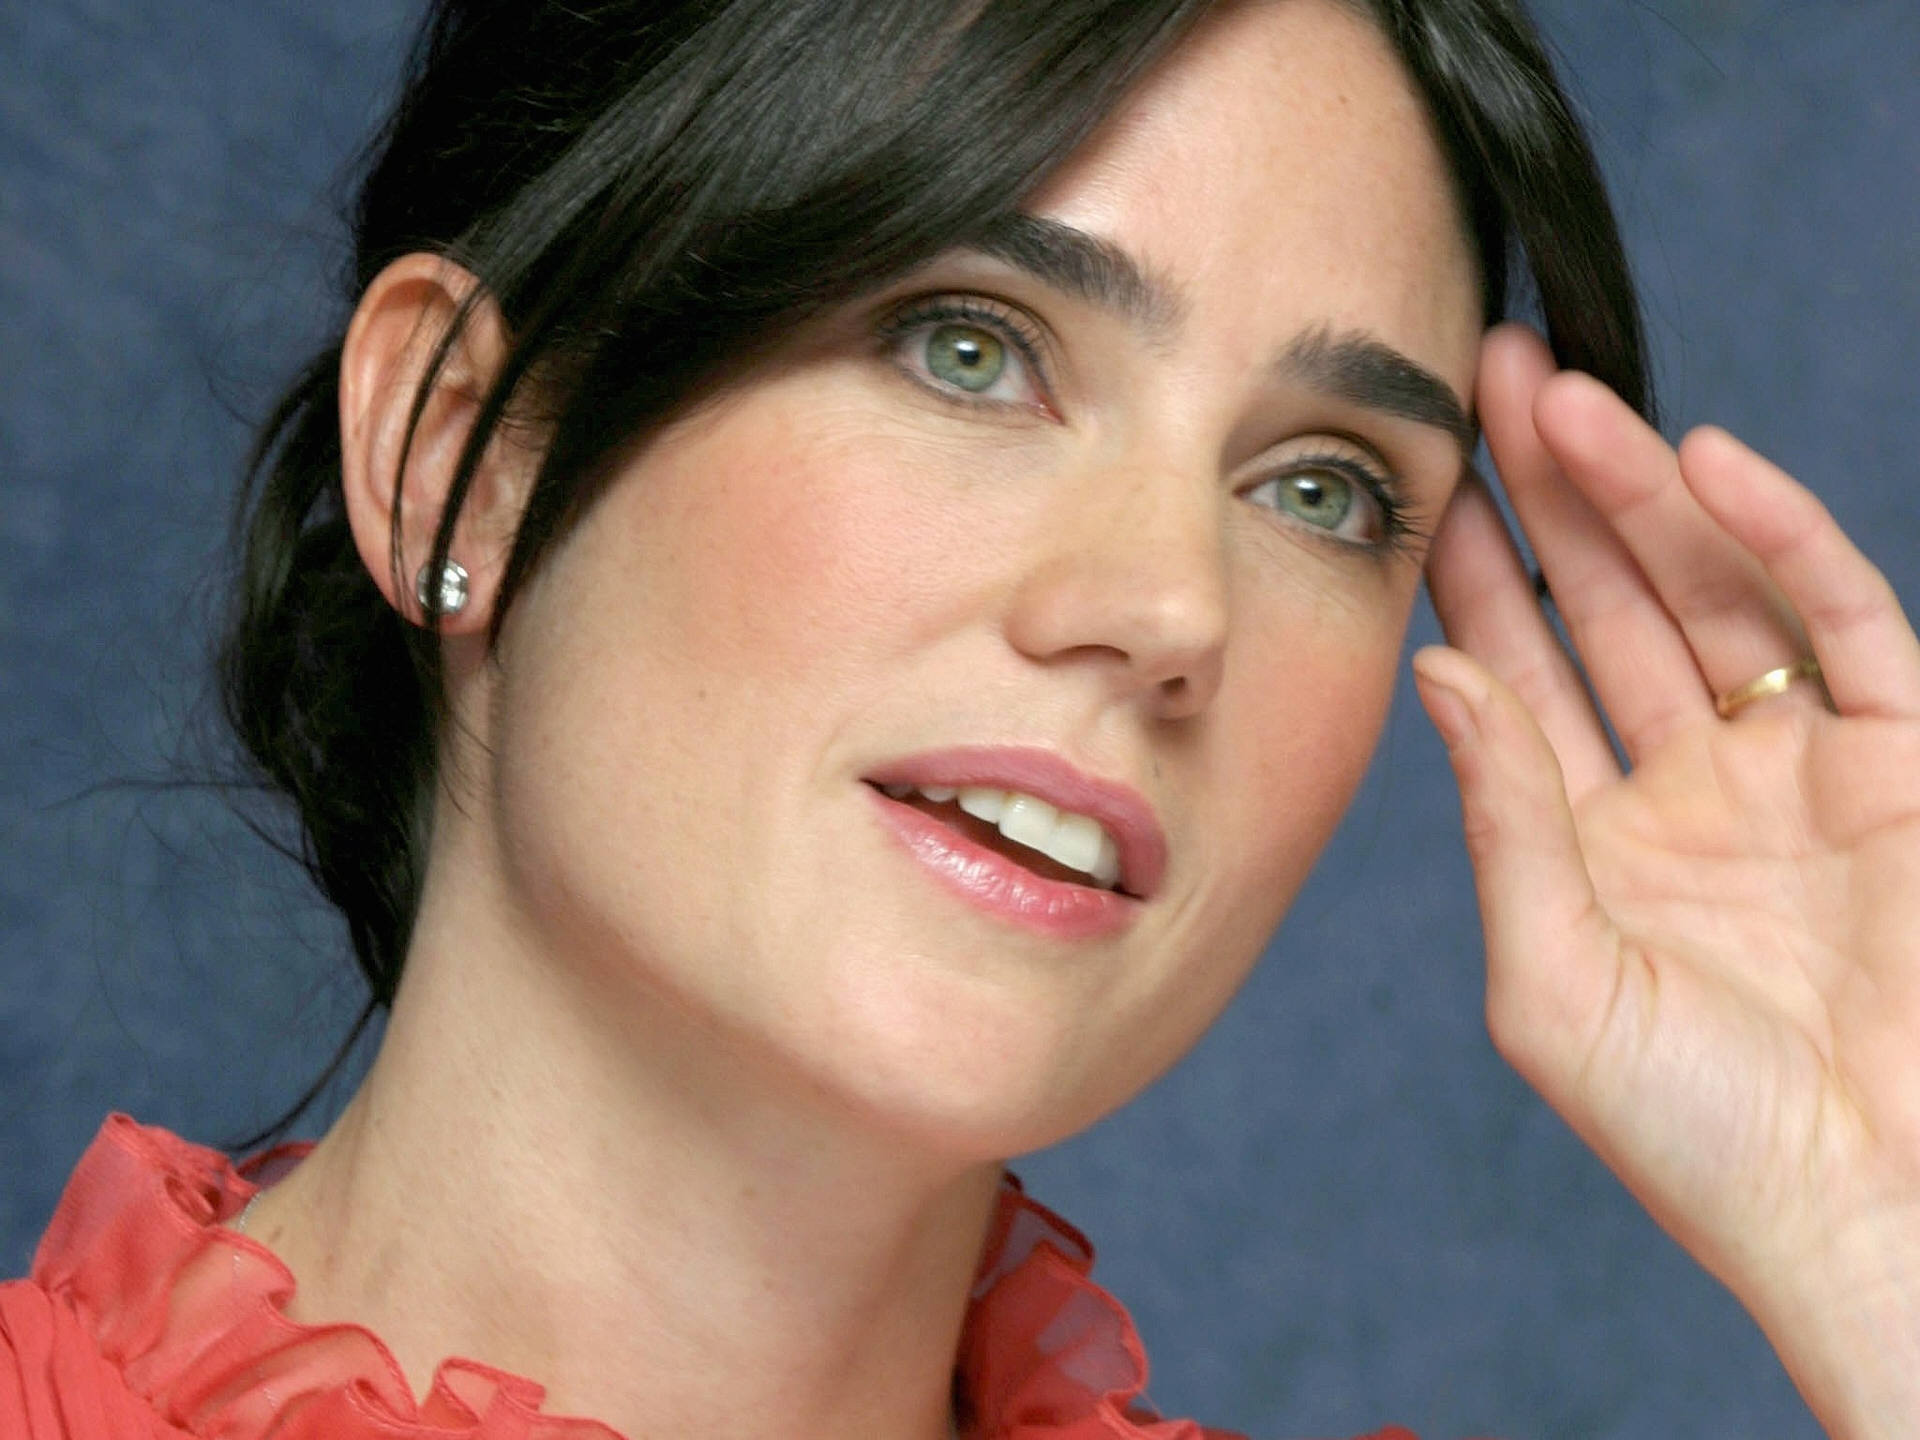 Jennifer Connelly 27005 1024x768 px